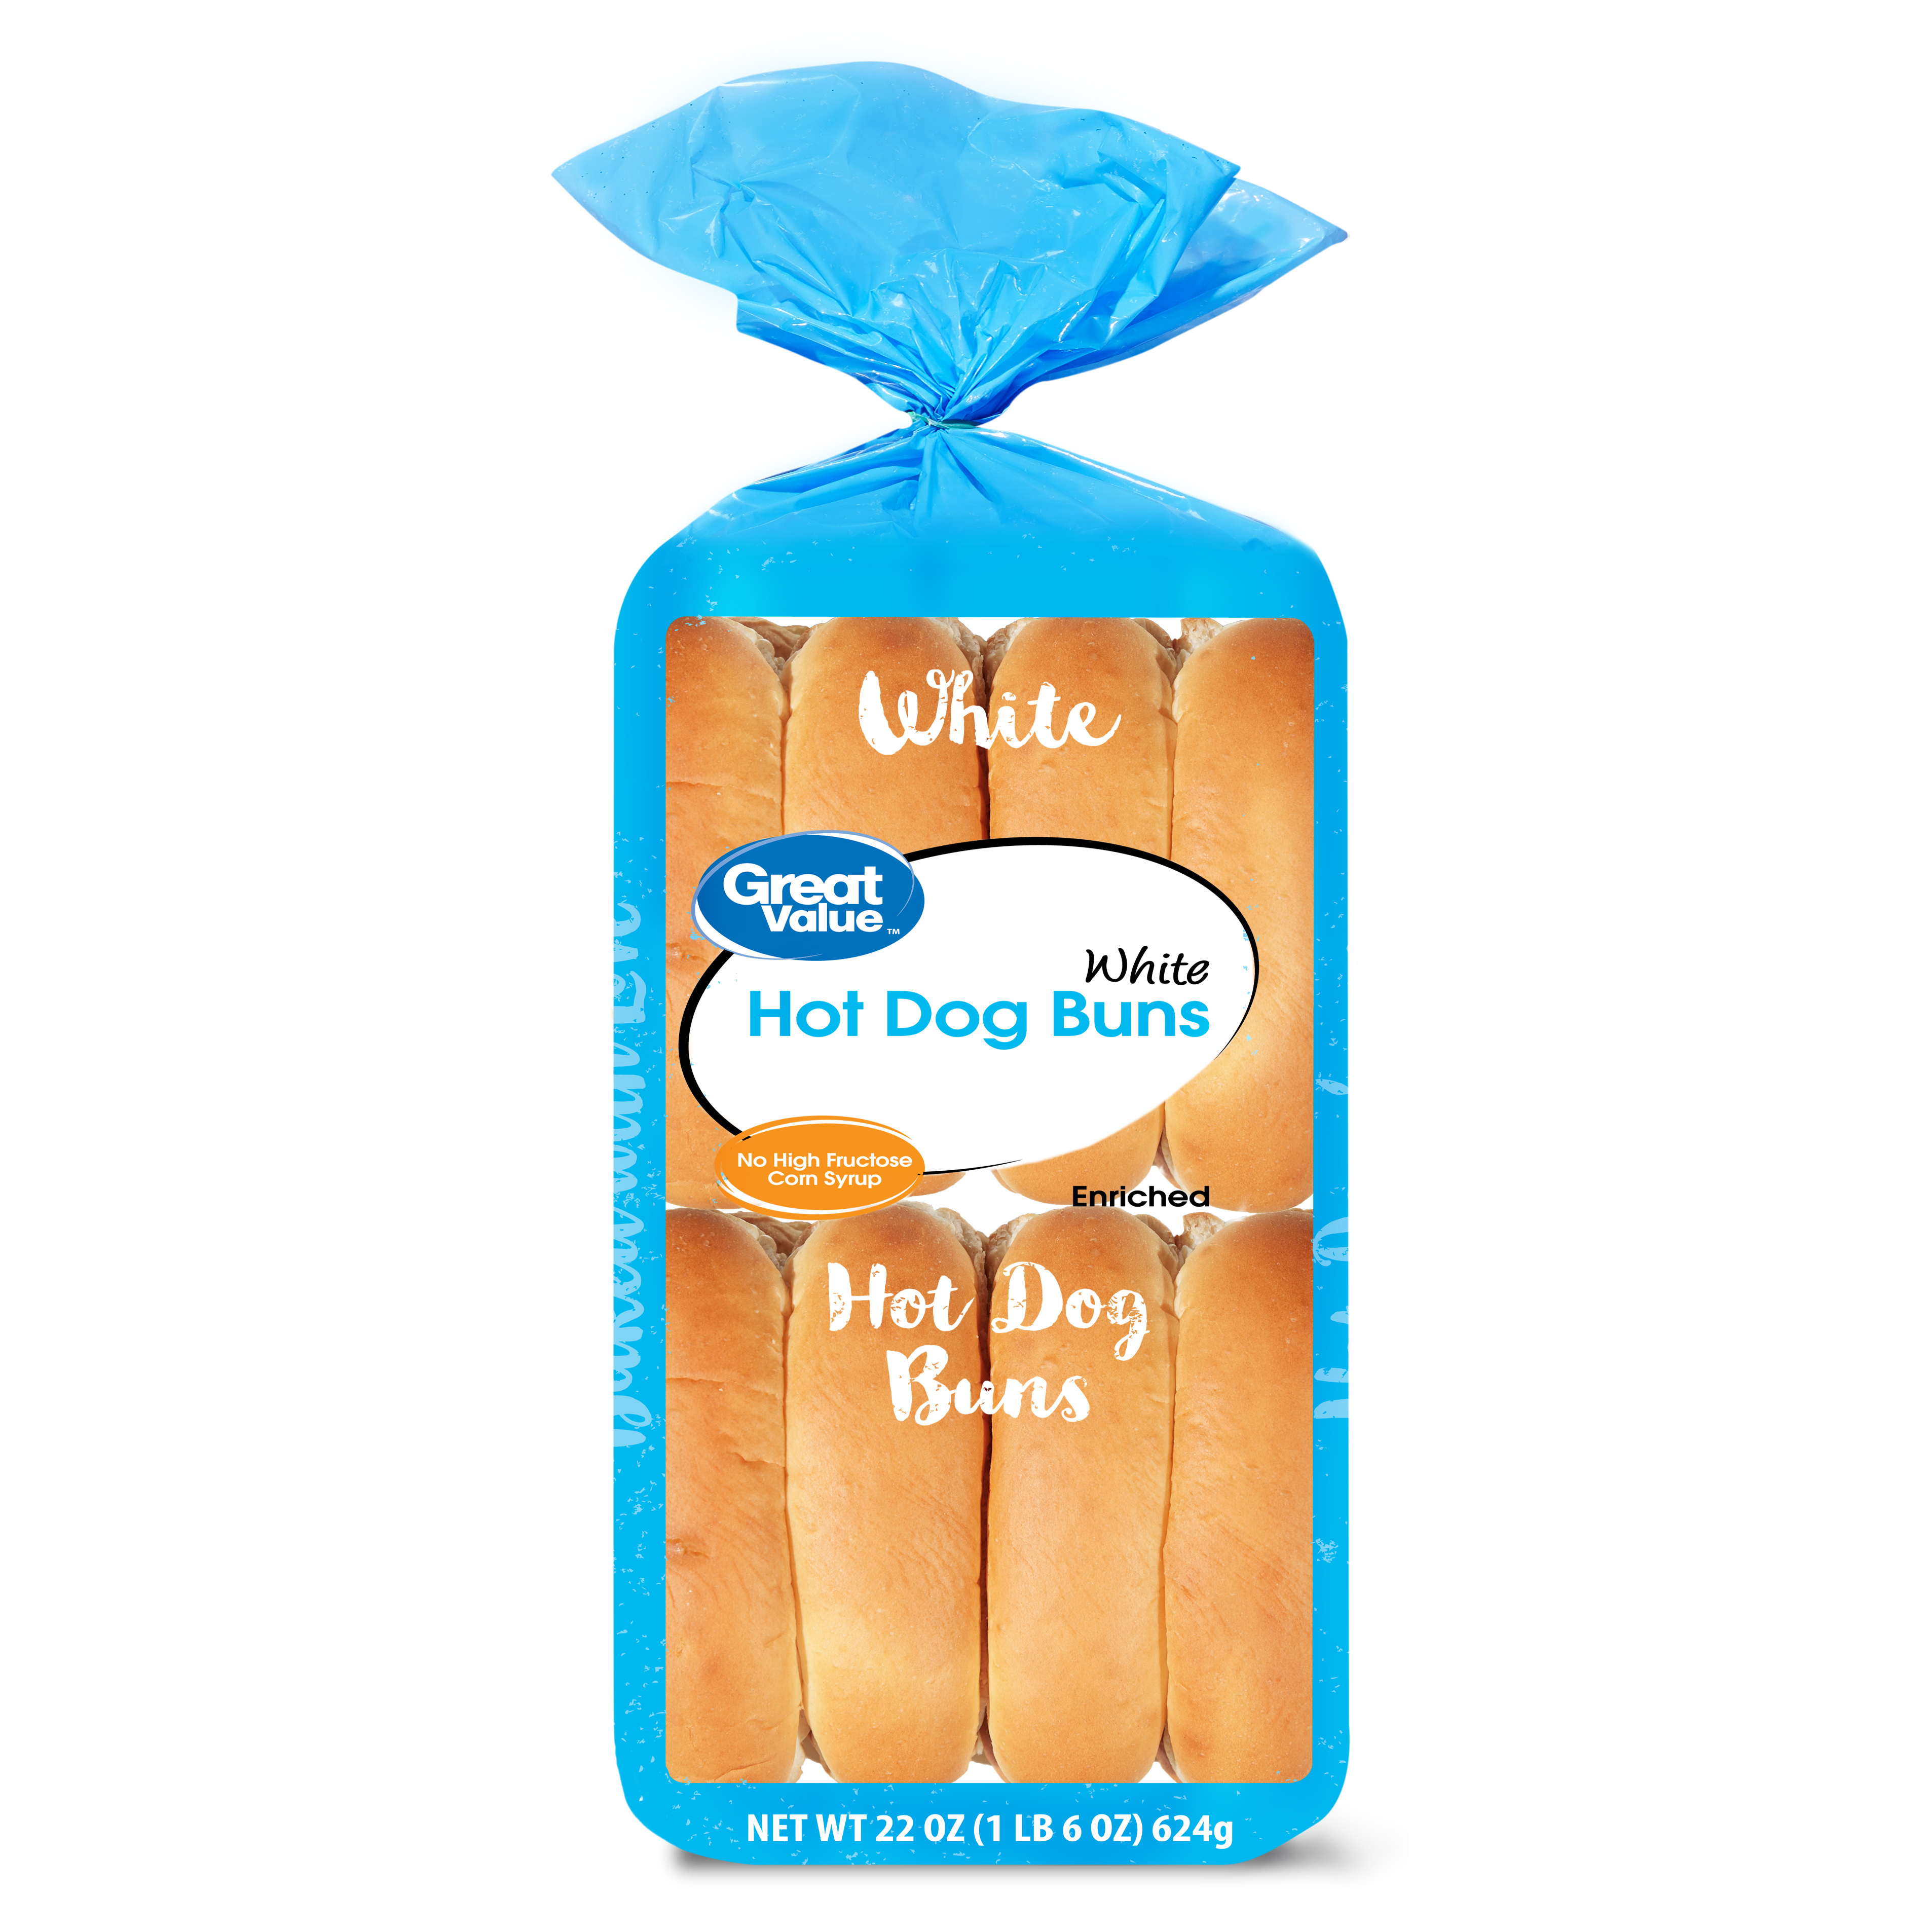 Great Value Hot Dog Buns, 22 oz, 16 count